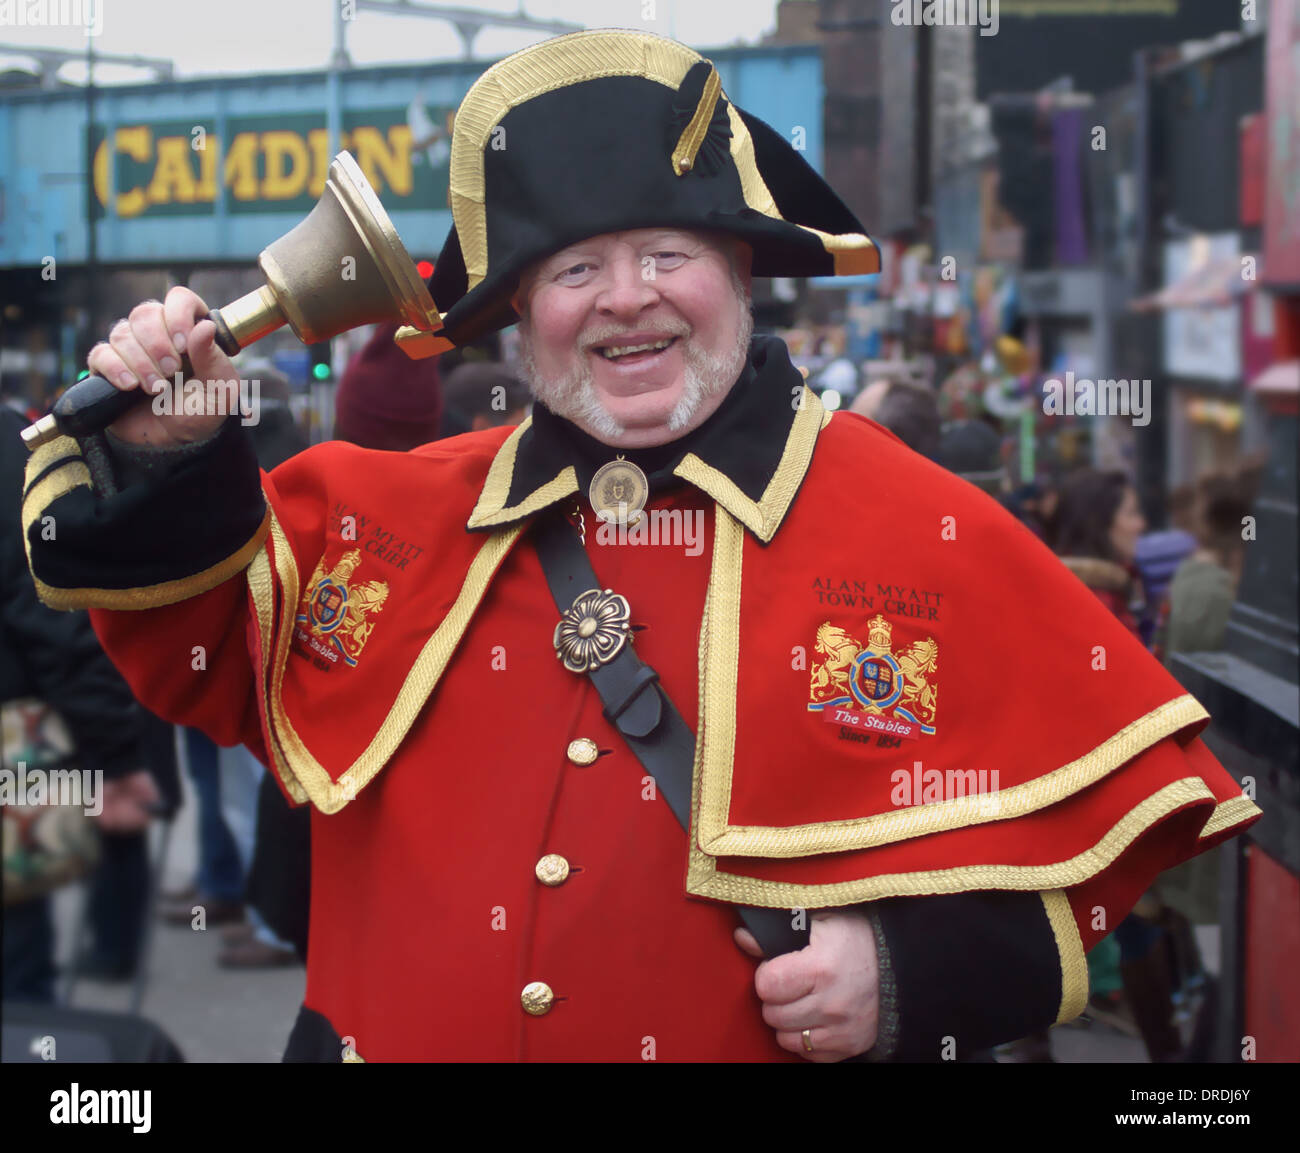 Town Crier ringing bell in camden, London - Stock Image